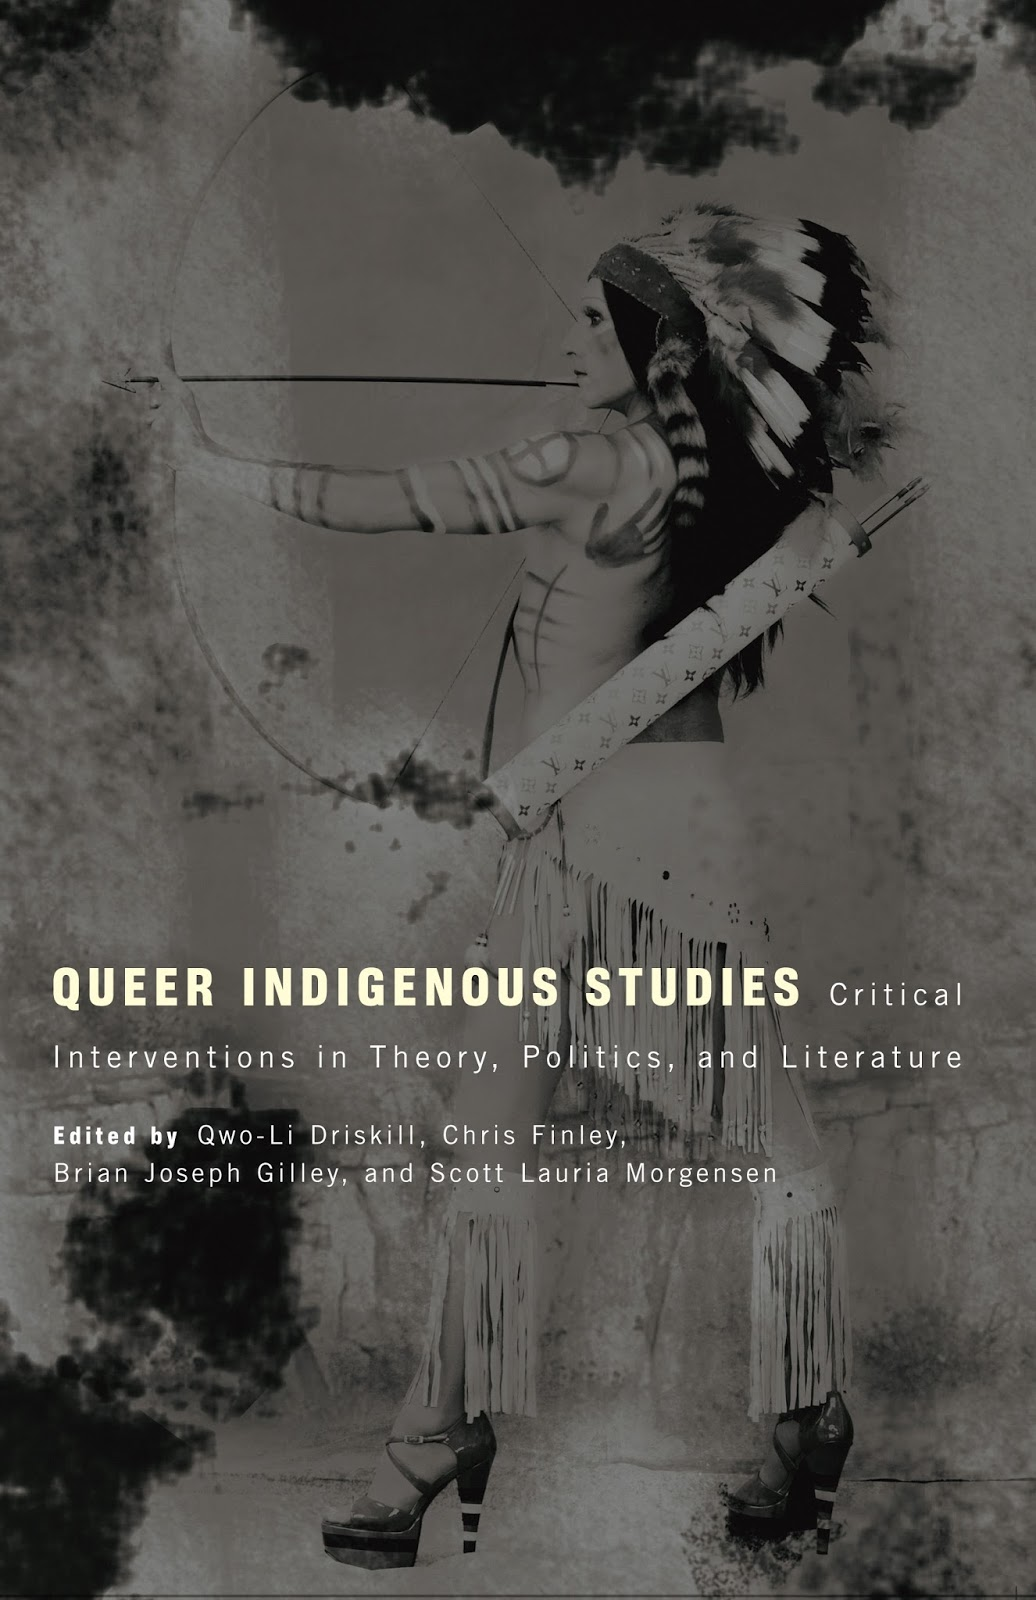 literature review of queer theory There is much more to be said in terms of the rich concepts and ideas discussed in foucault's work, but it is my hope that this overview has given you a substantial look at the most prominent ideas and concepts discussed in the history of sexuality-especially the ideas that i deem most useful for queer theory and gender studies.